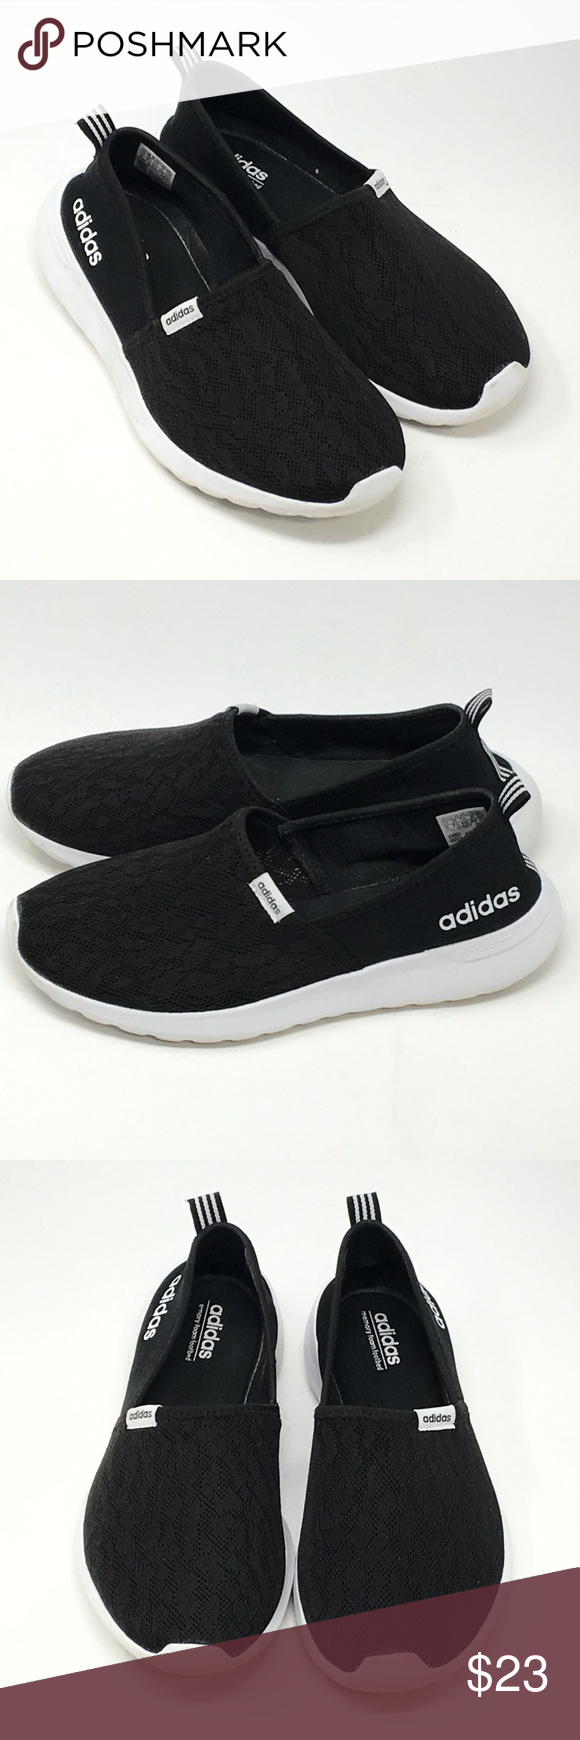 0388581da6d8 ADIDAS Slip On CloudFoam Lite Racer Shoes Used But in Excellent Condition. Actually  these are